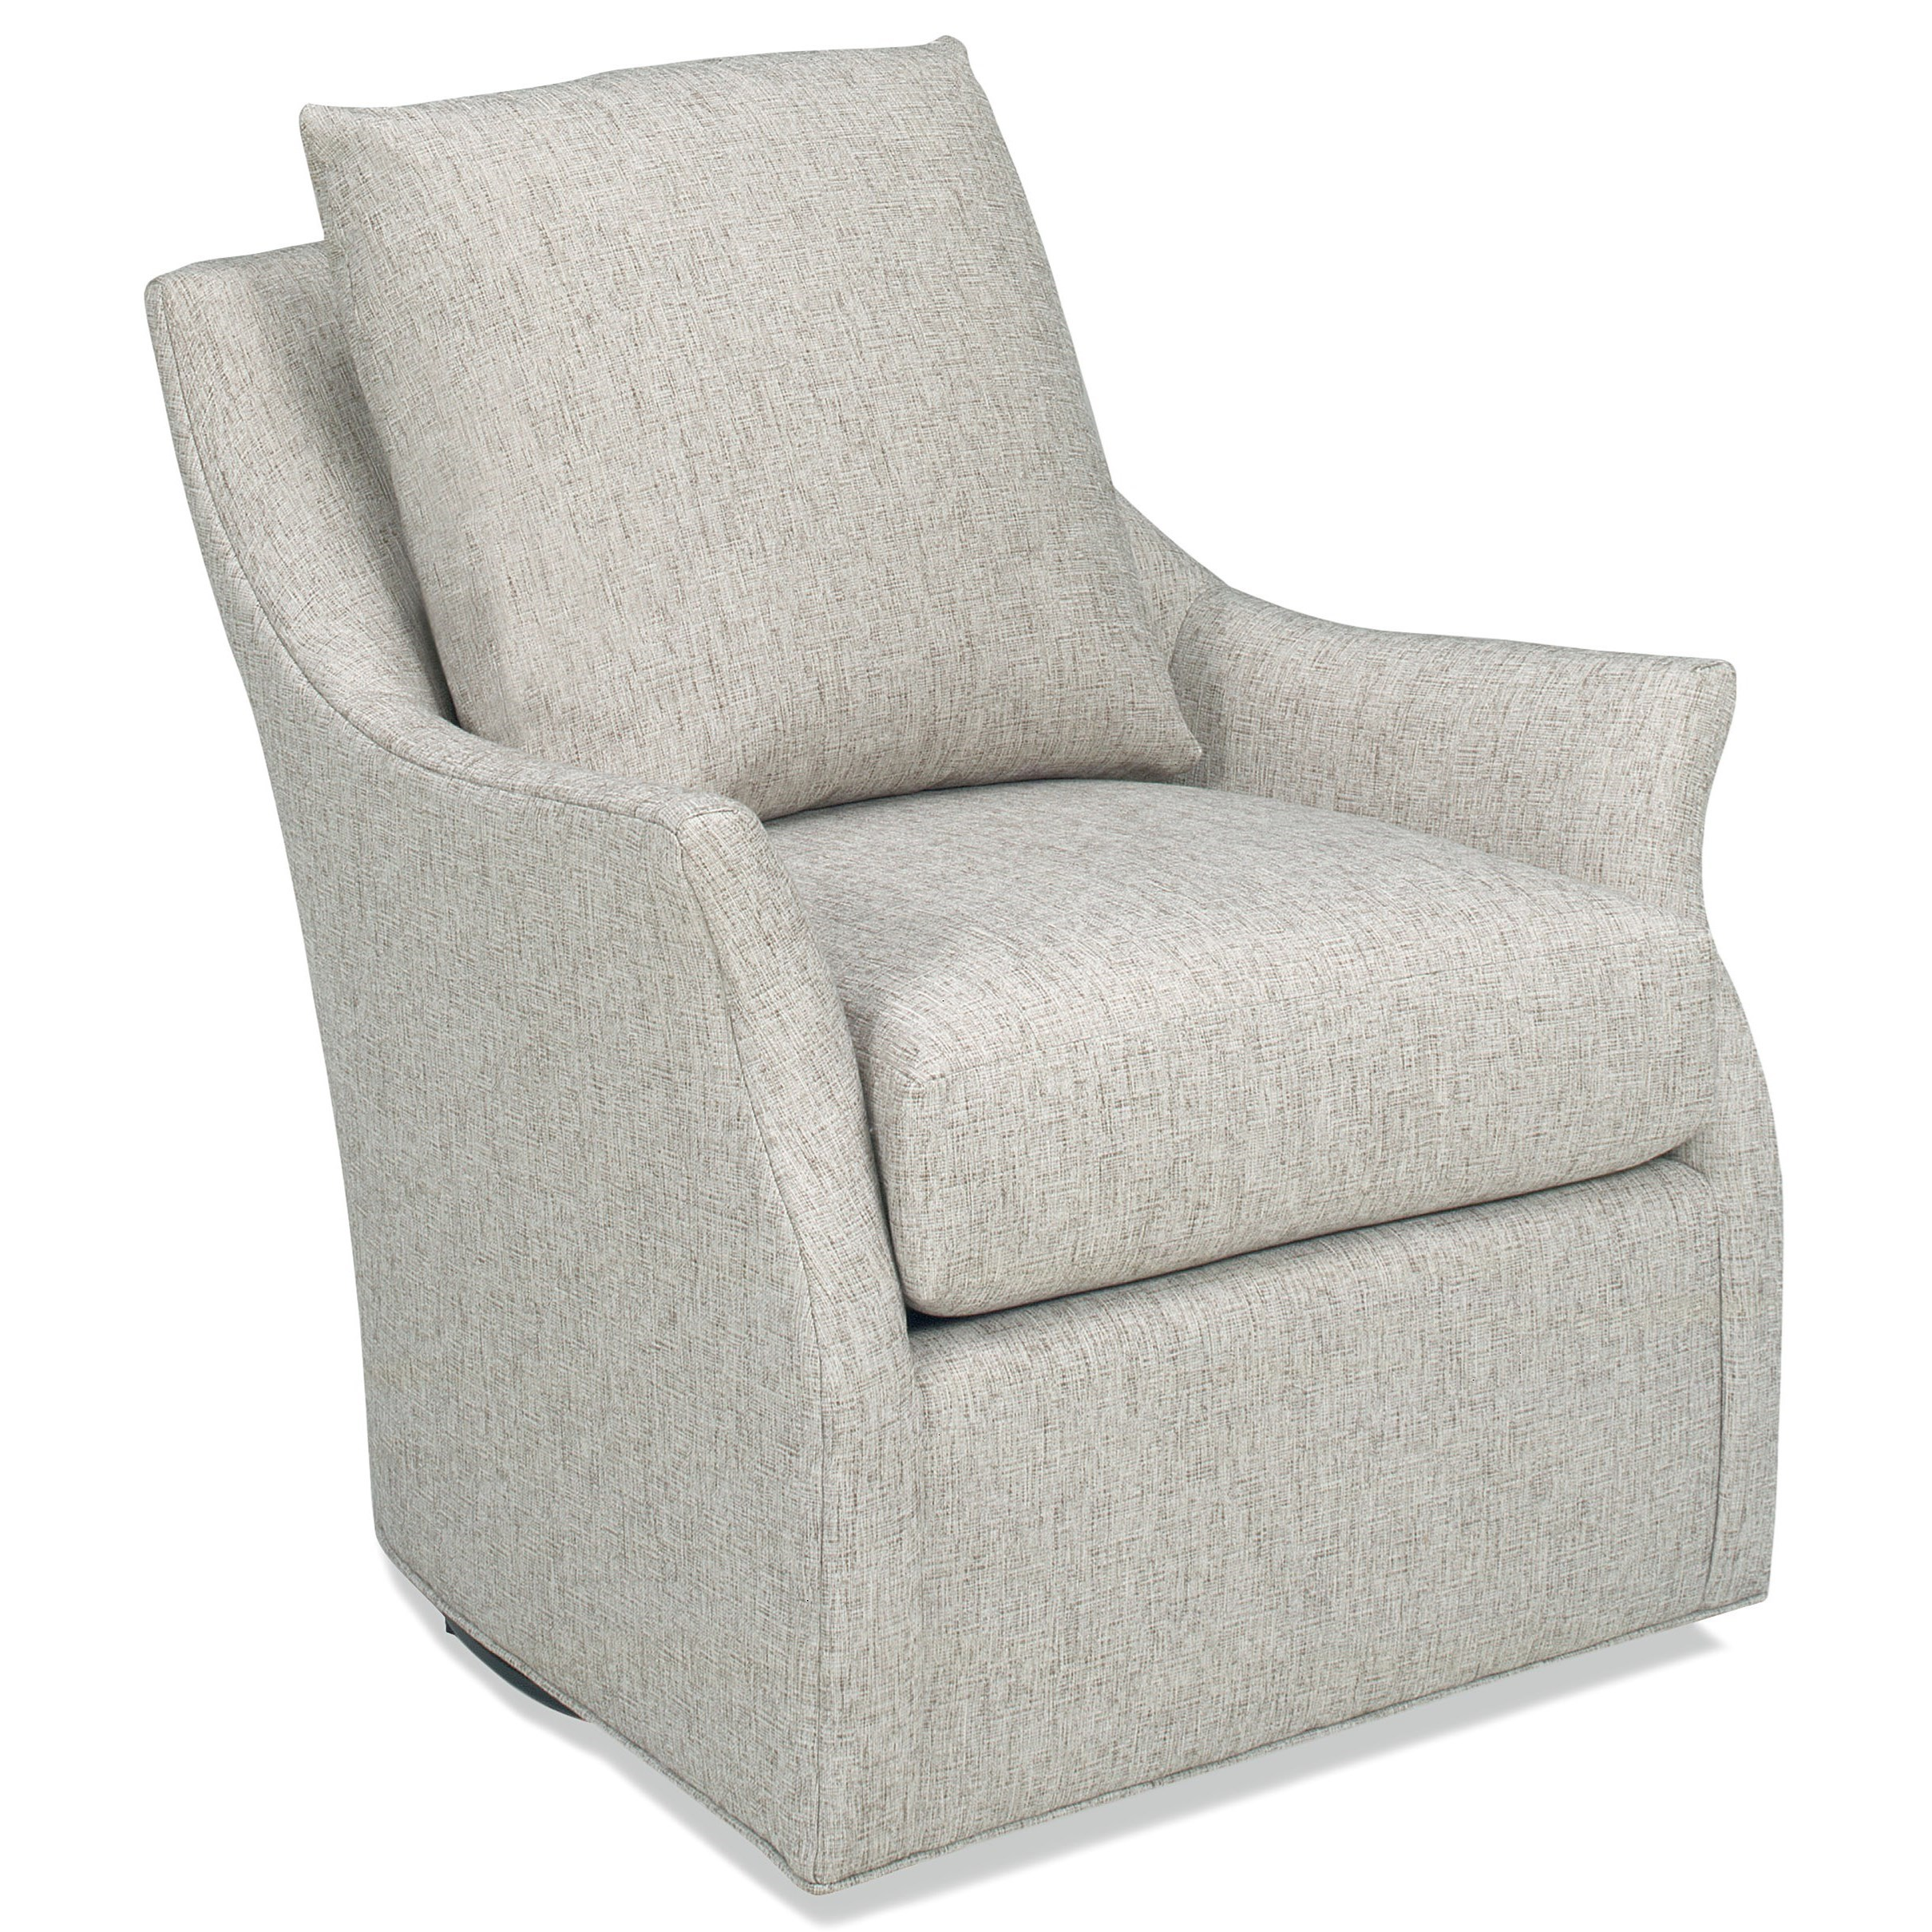 Lucy Swivel Chair by Temple Furniture at Stuckey Furniture